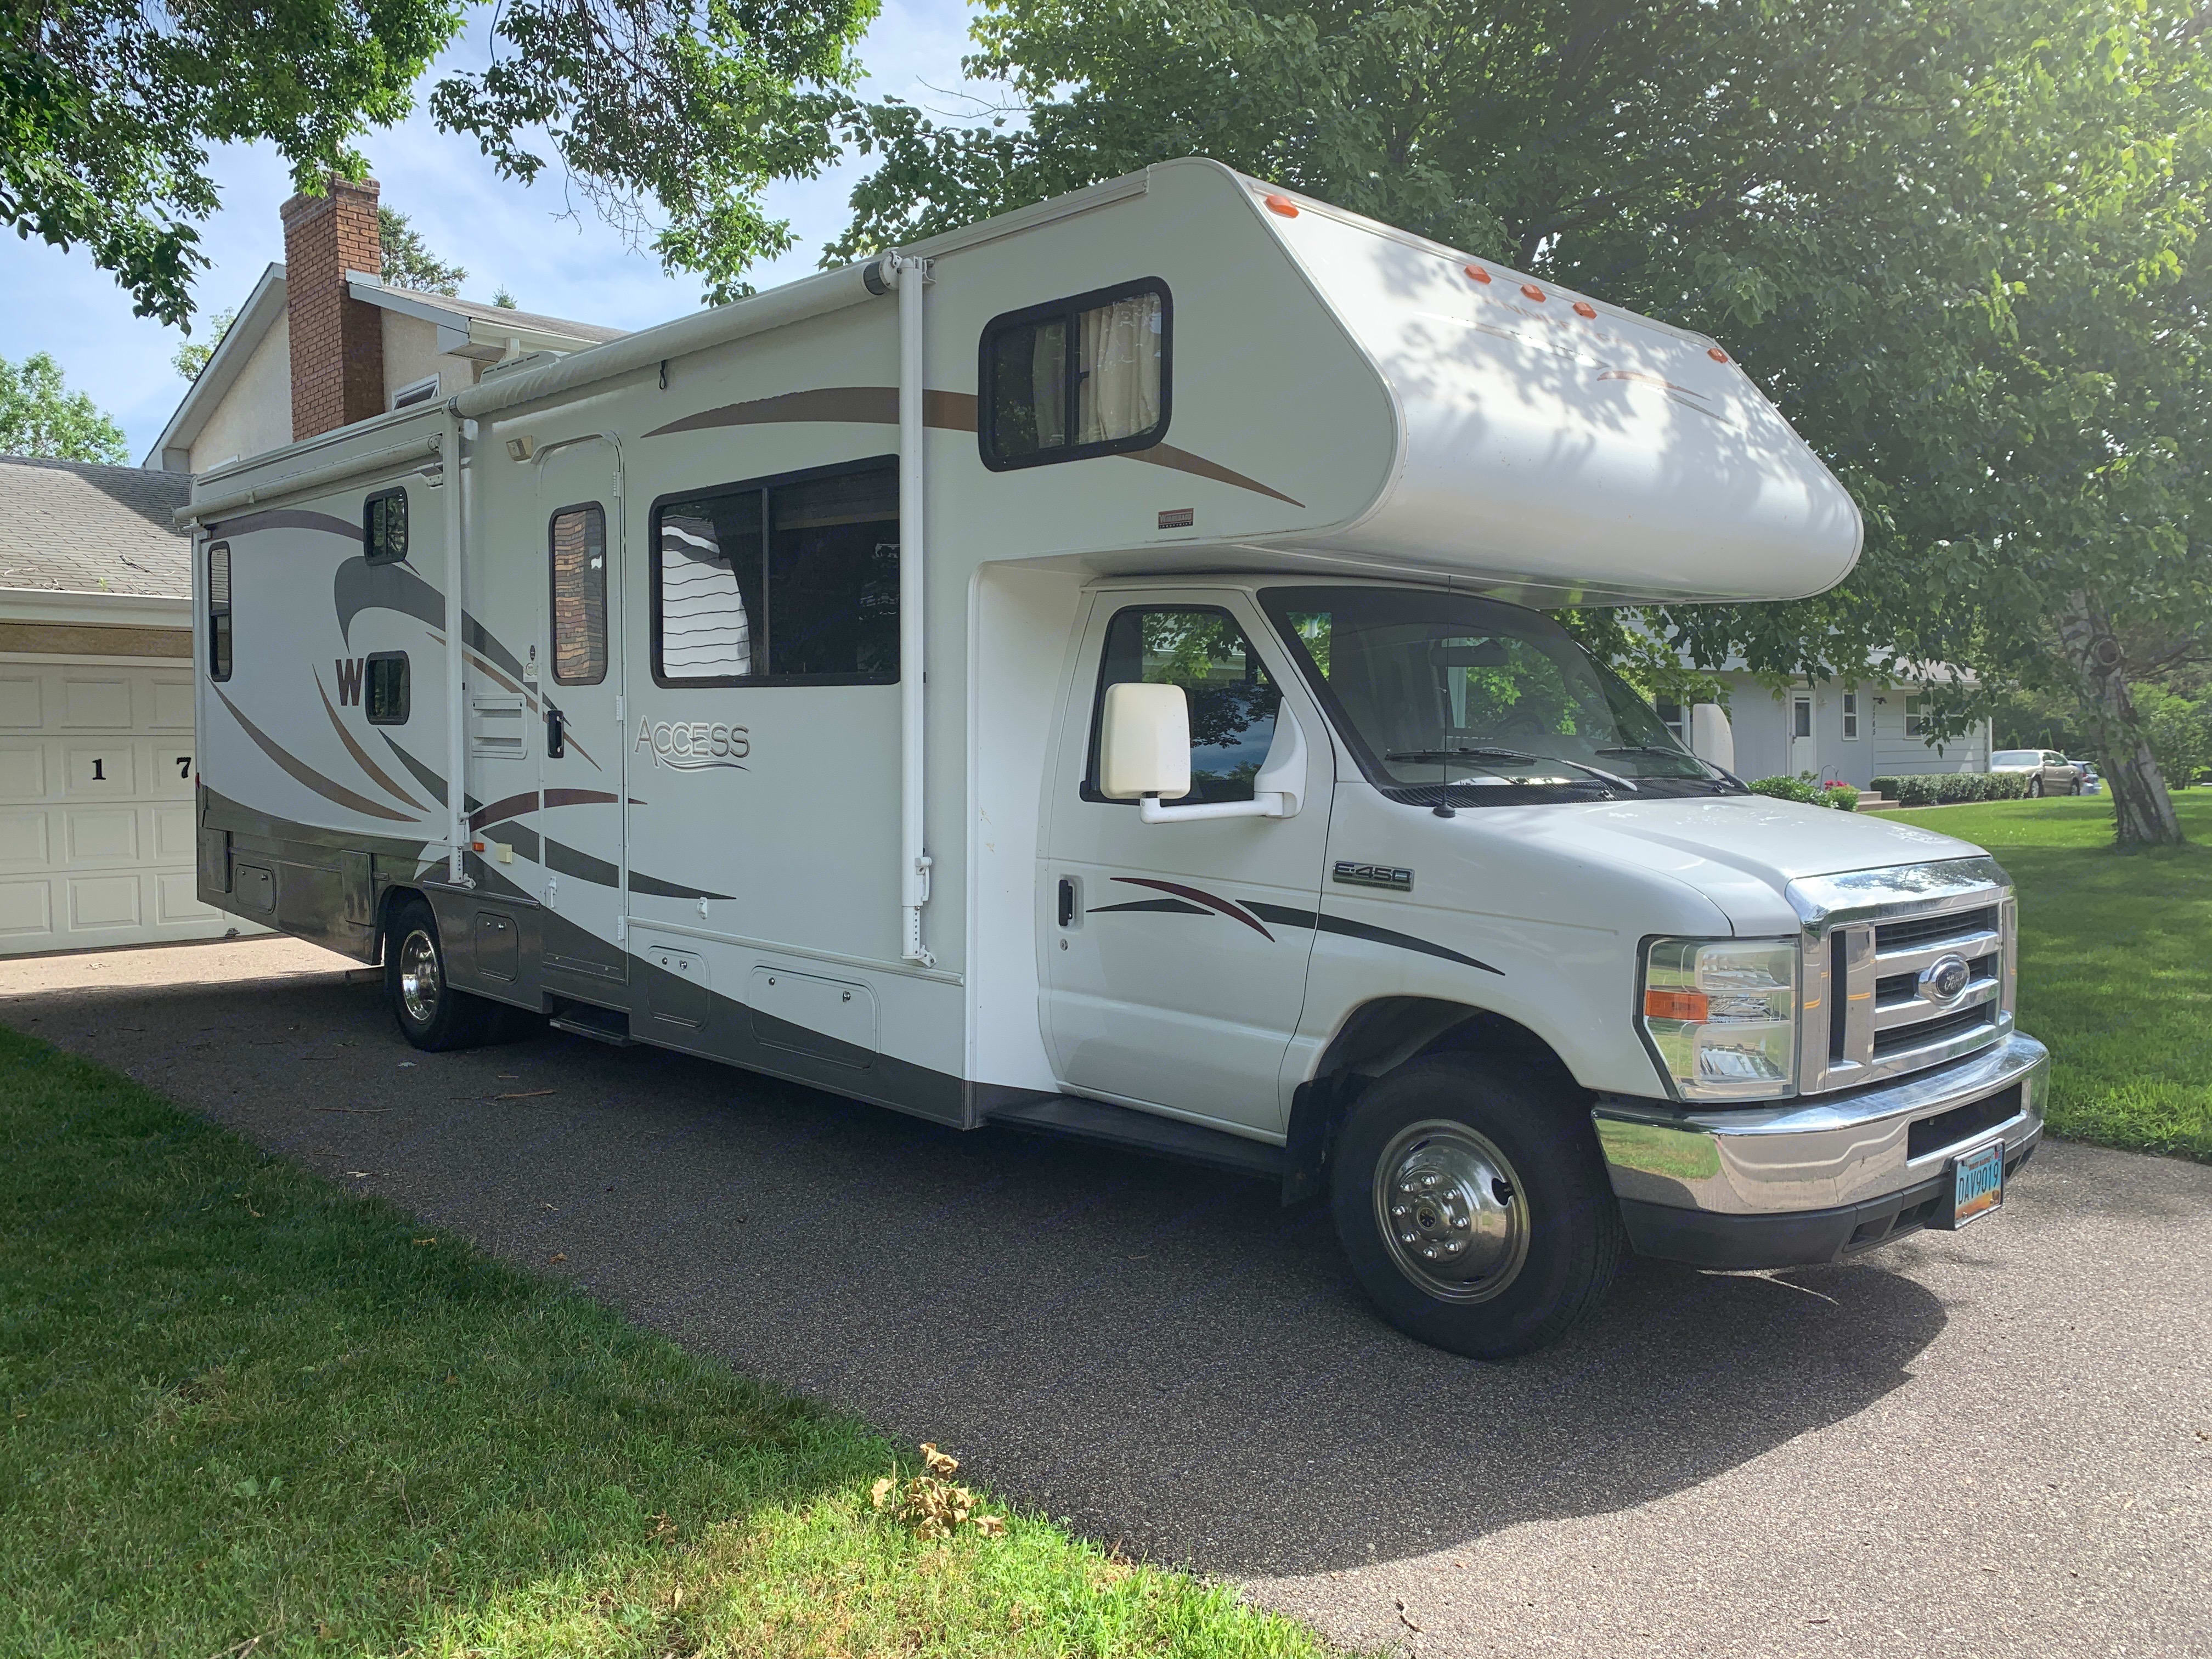 Meet Gladys! A 2008 Winnebago Access with low mileage and tons of sleeping options.. Winnebago Access 2008